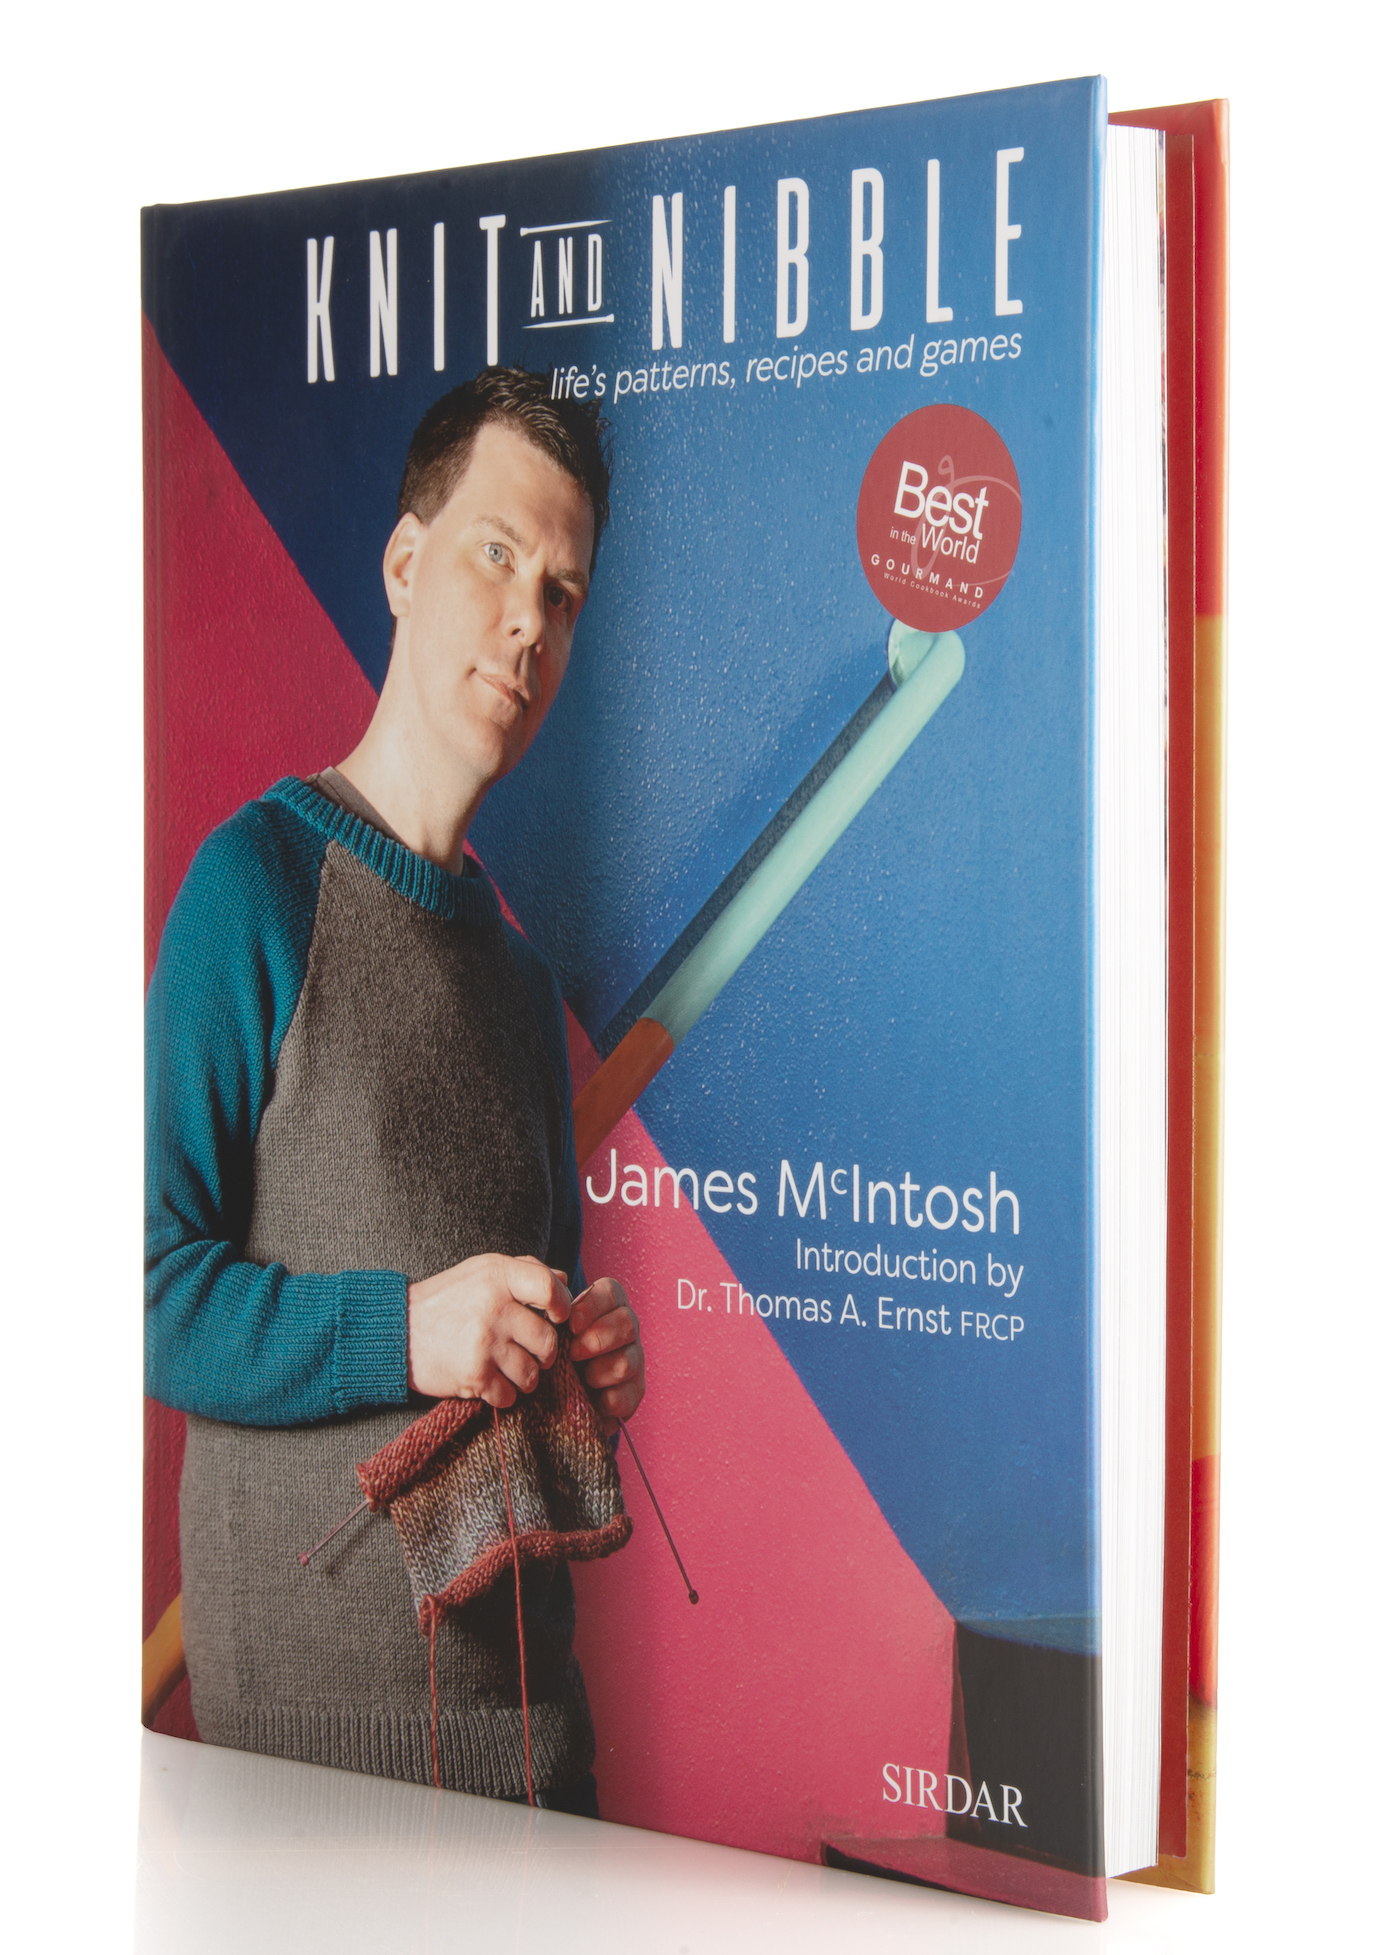 Knit and Nibble by James McIntosh and Dr Thomas A. Ernst FRCP